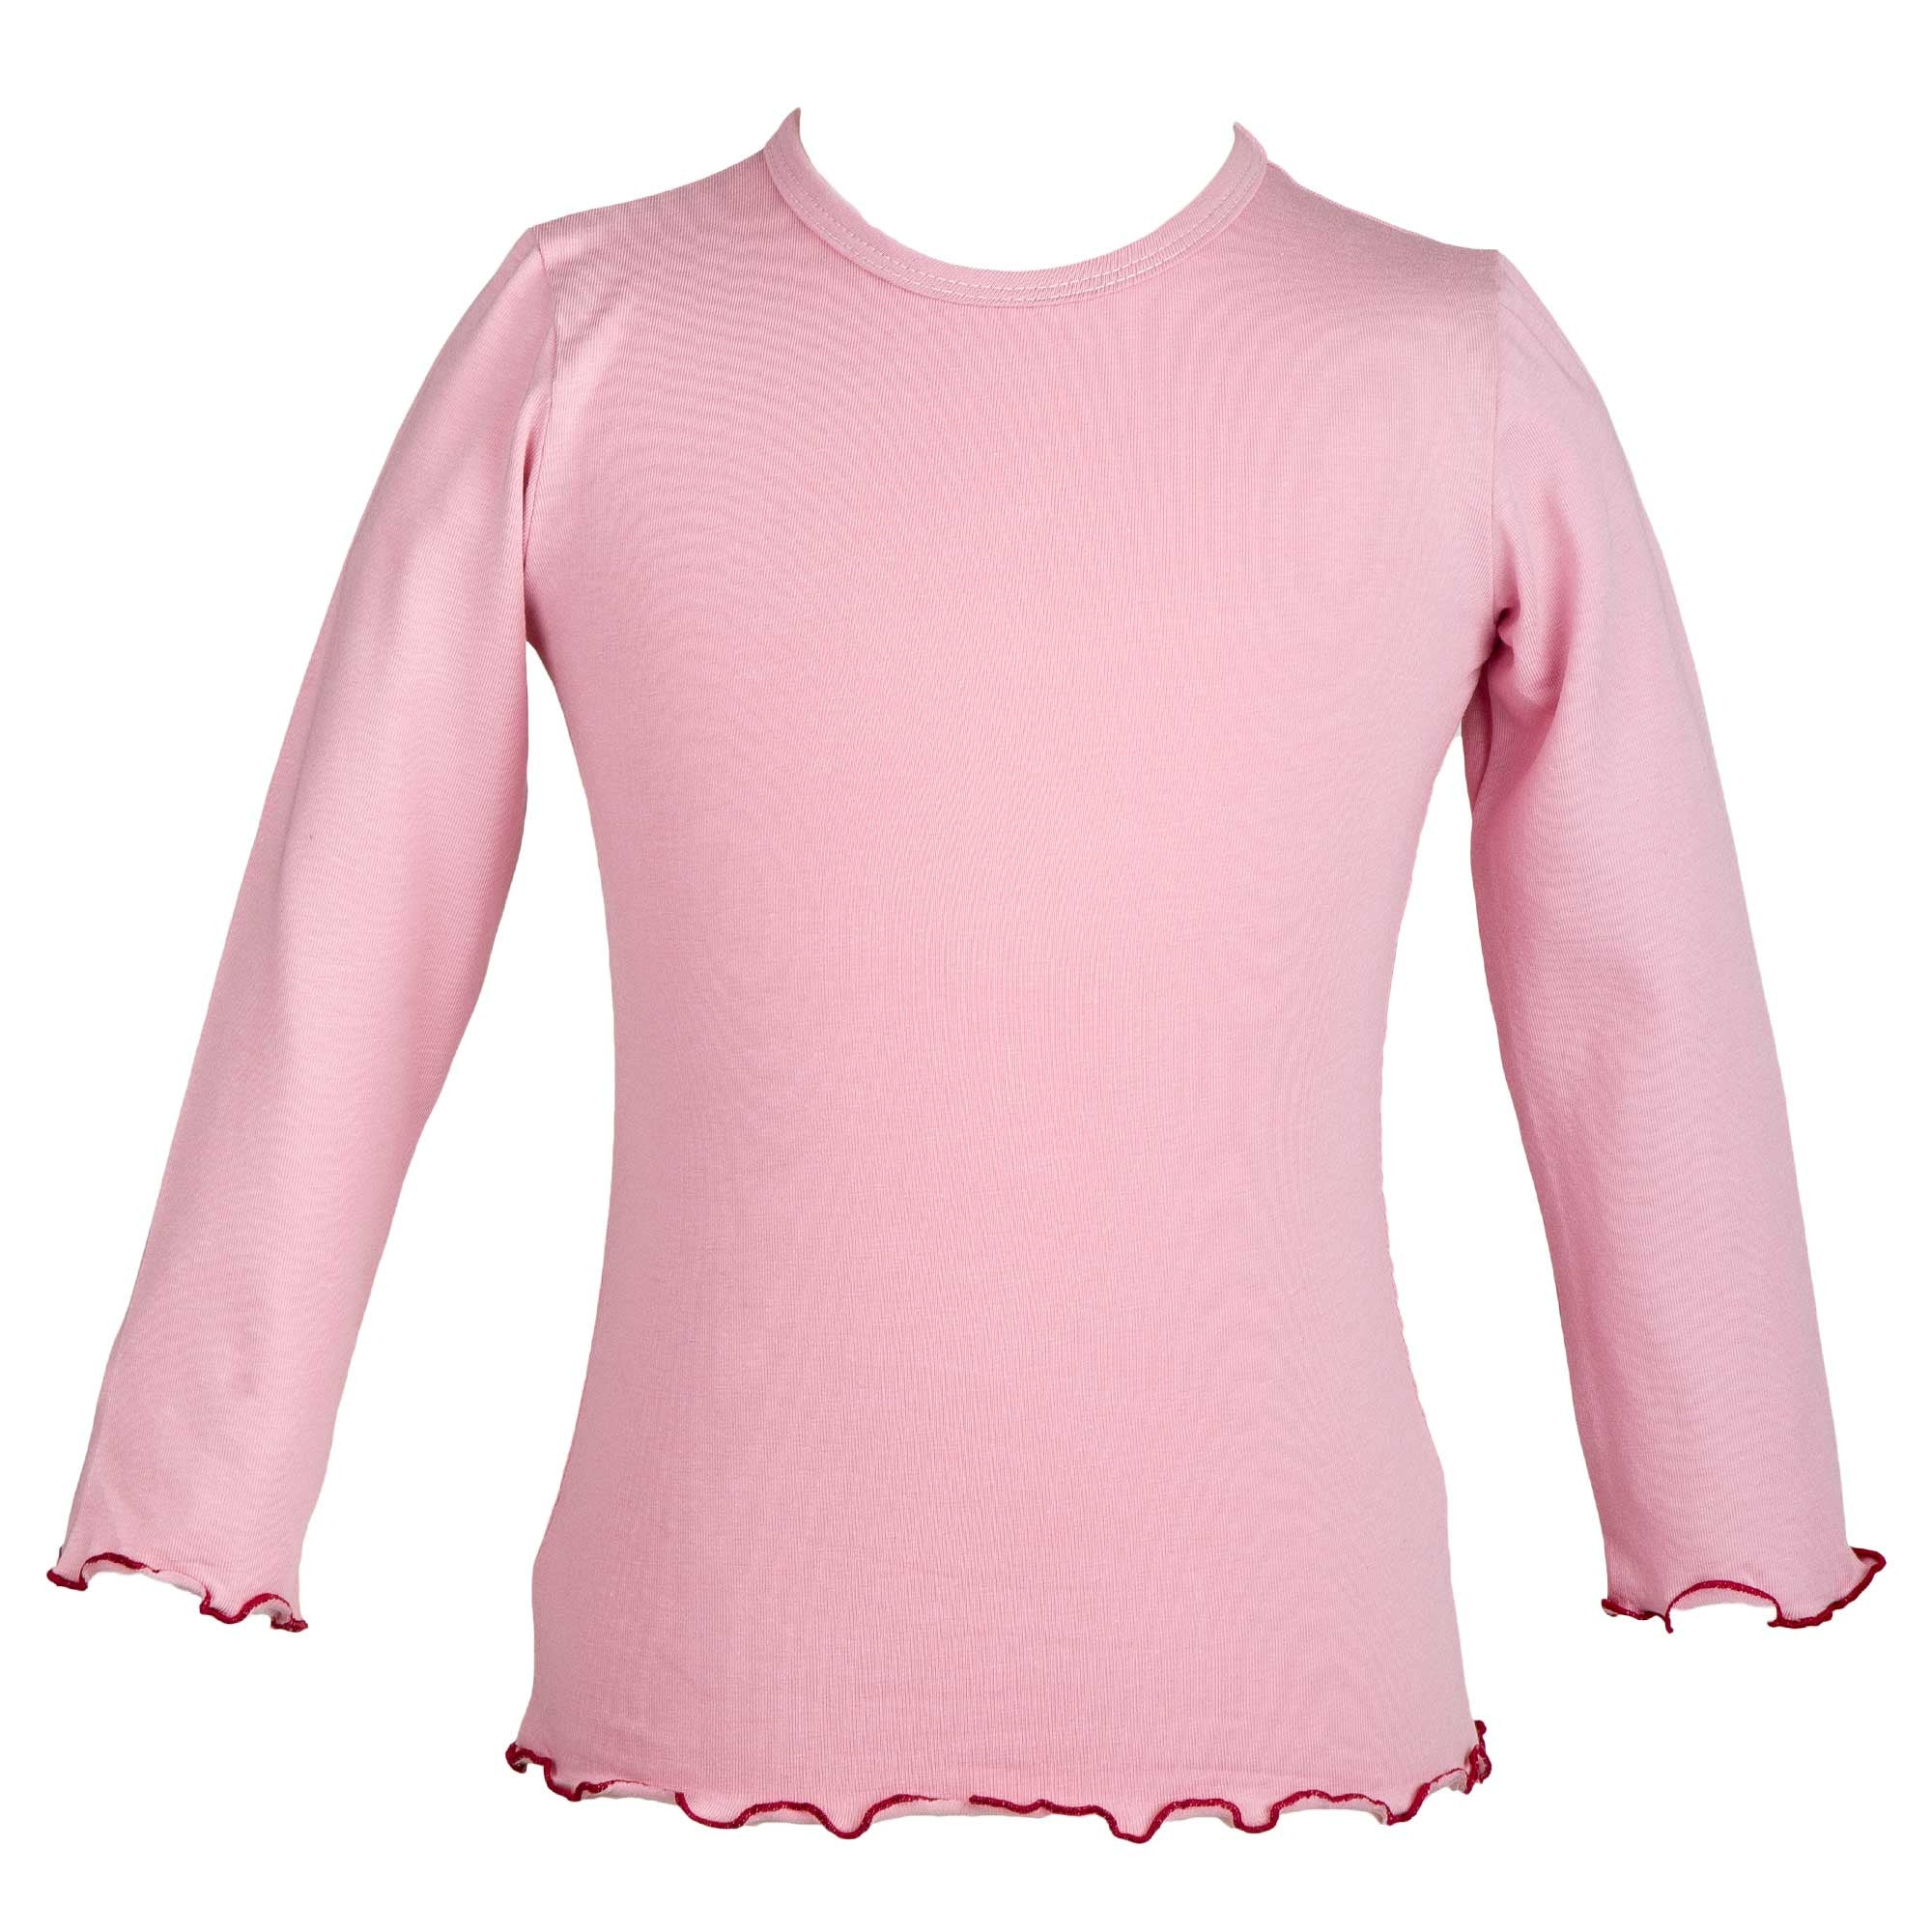 Long-sleeved pink smoke top